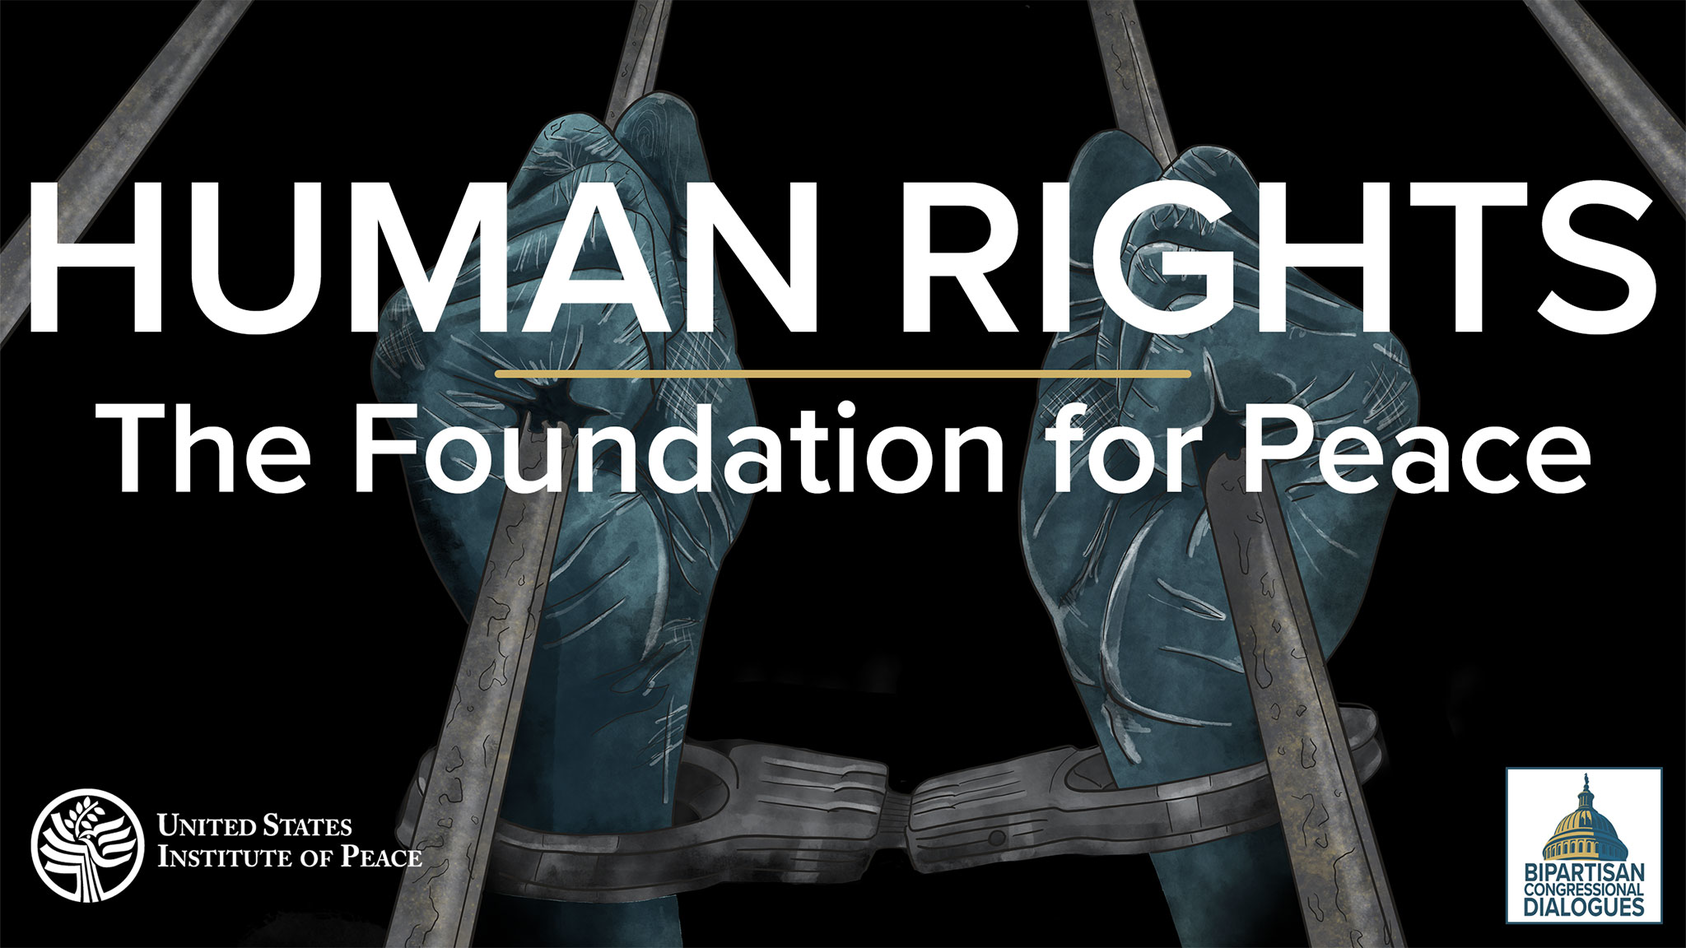 USIP Invitation - Human Rights: The Foundation for Peace